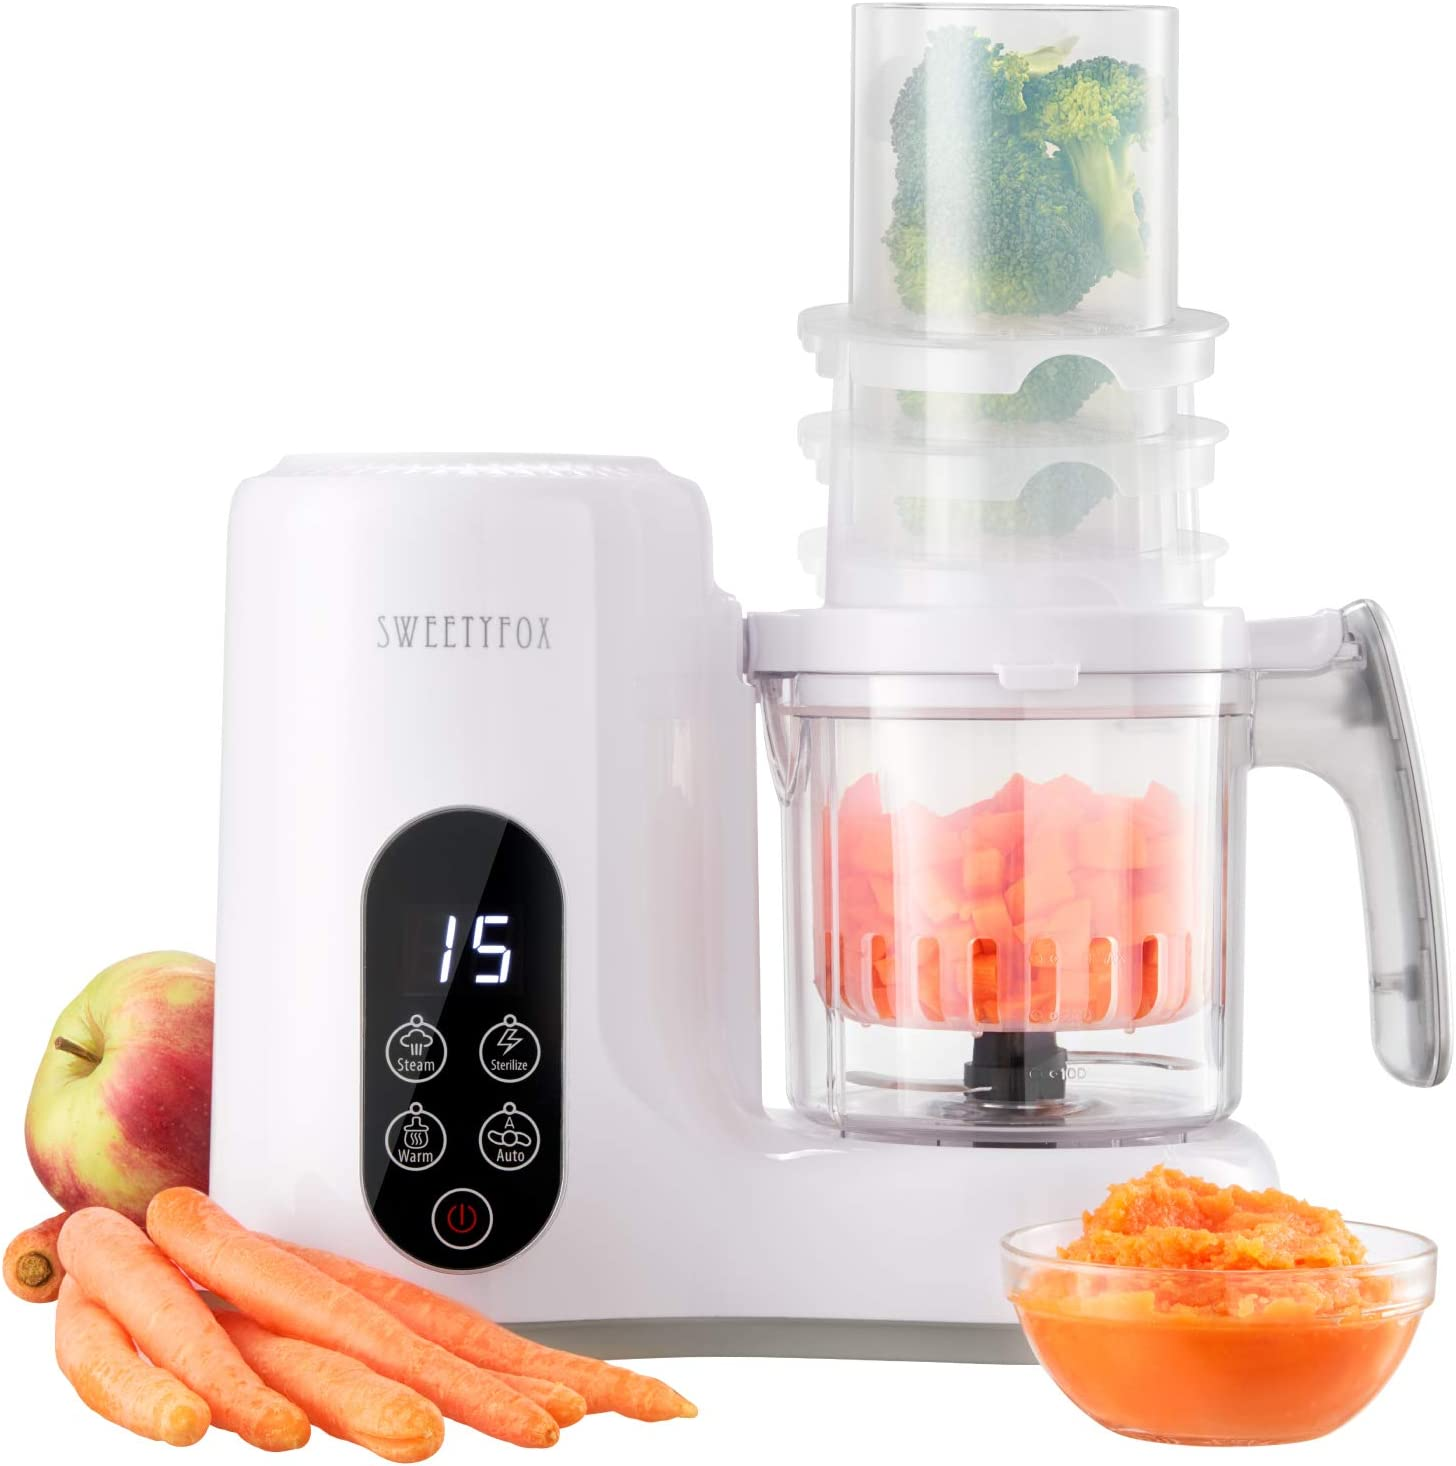 6-in-1 Baby Food Maker Steamer and Blender - Vegetable Steamer, Baby Food Blender, Bottle Sanitizer, Food Warmer, Defrost, Auto Clean - Baby Food Processor to Make Organic Baby Food